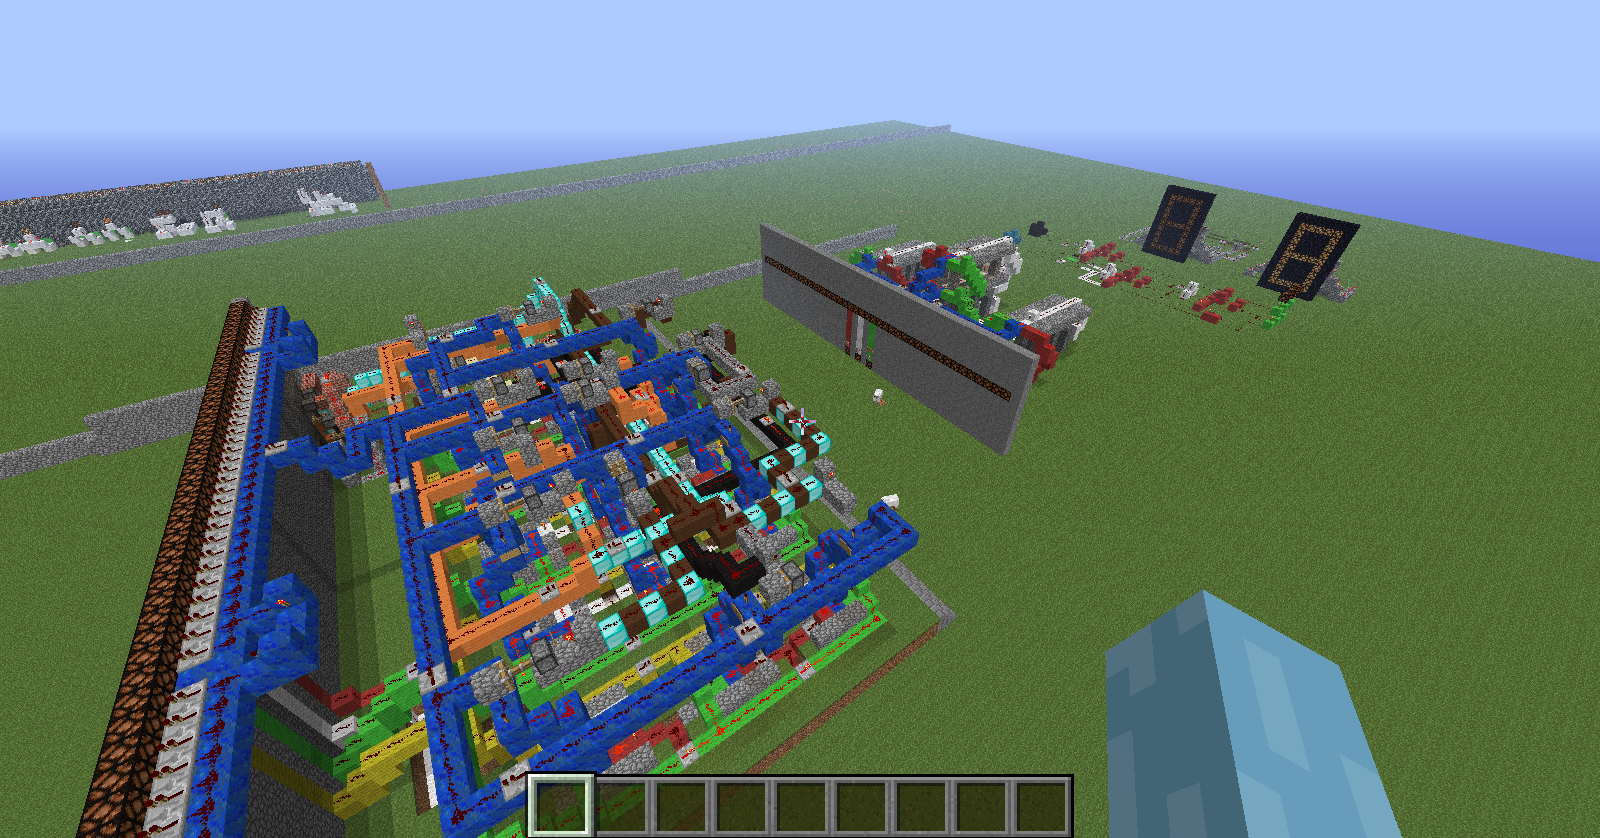 Overview redstone learning map worlds projects minecraft redstone learning map sciox Choice Image